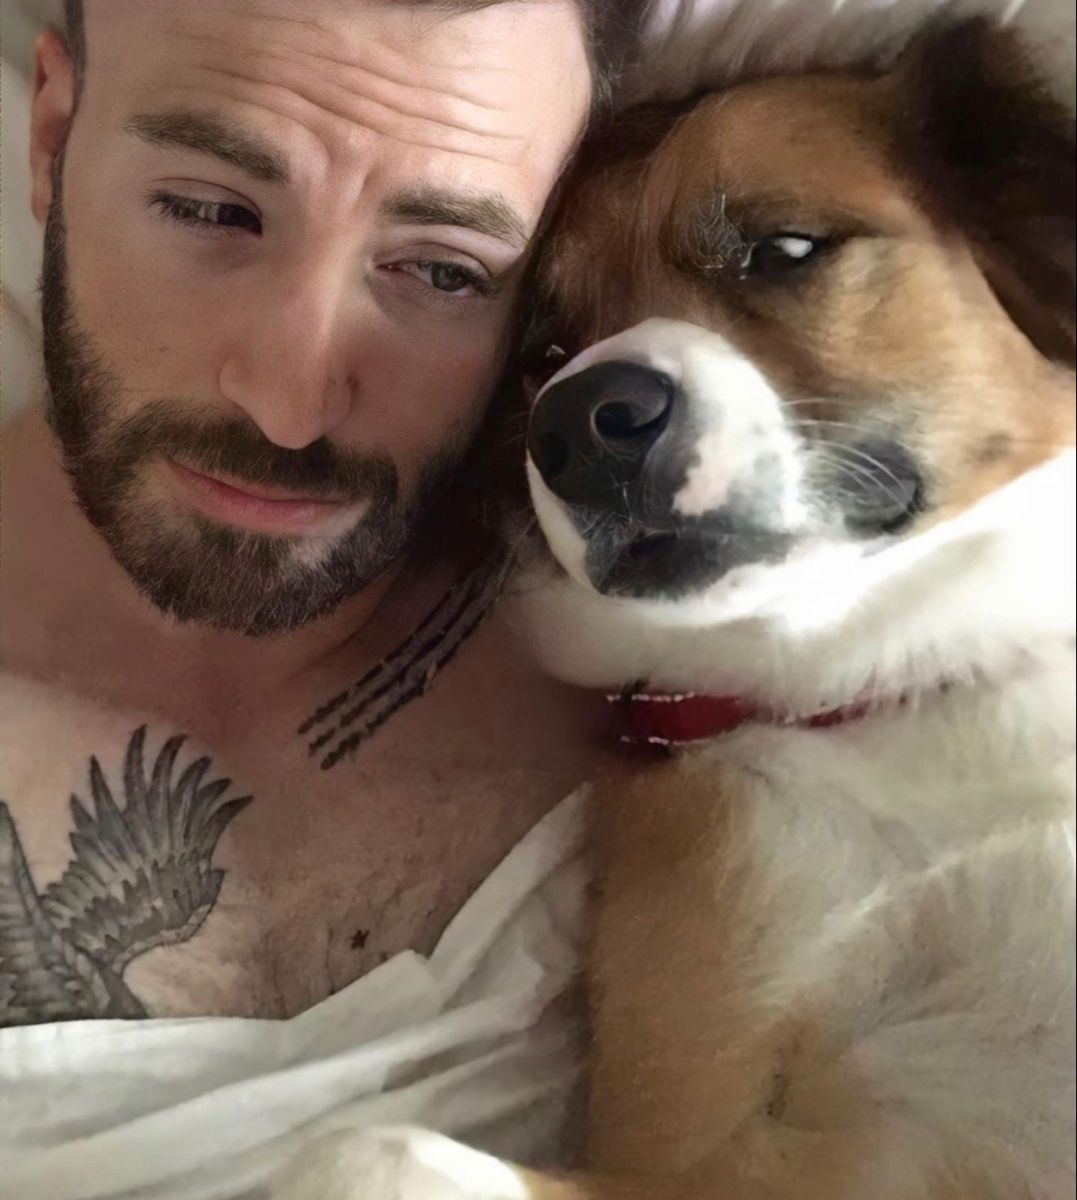 I Have This Tattooed On My Eye Lids Now Chris Evans Chris Evans Tattoos Chris Evans Captain America